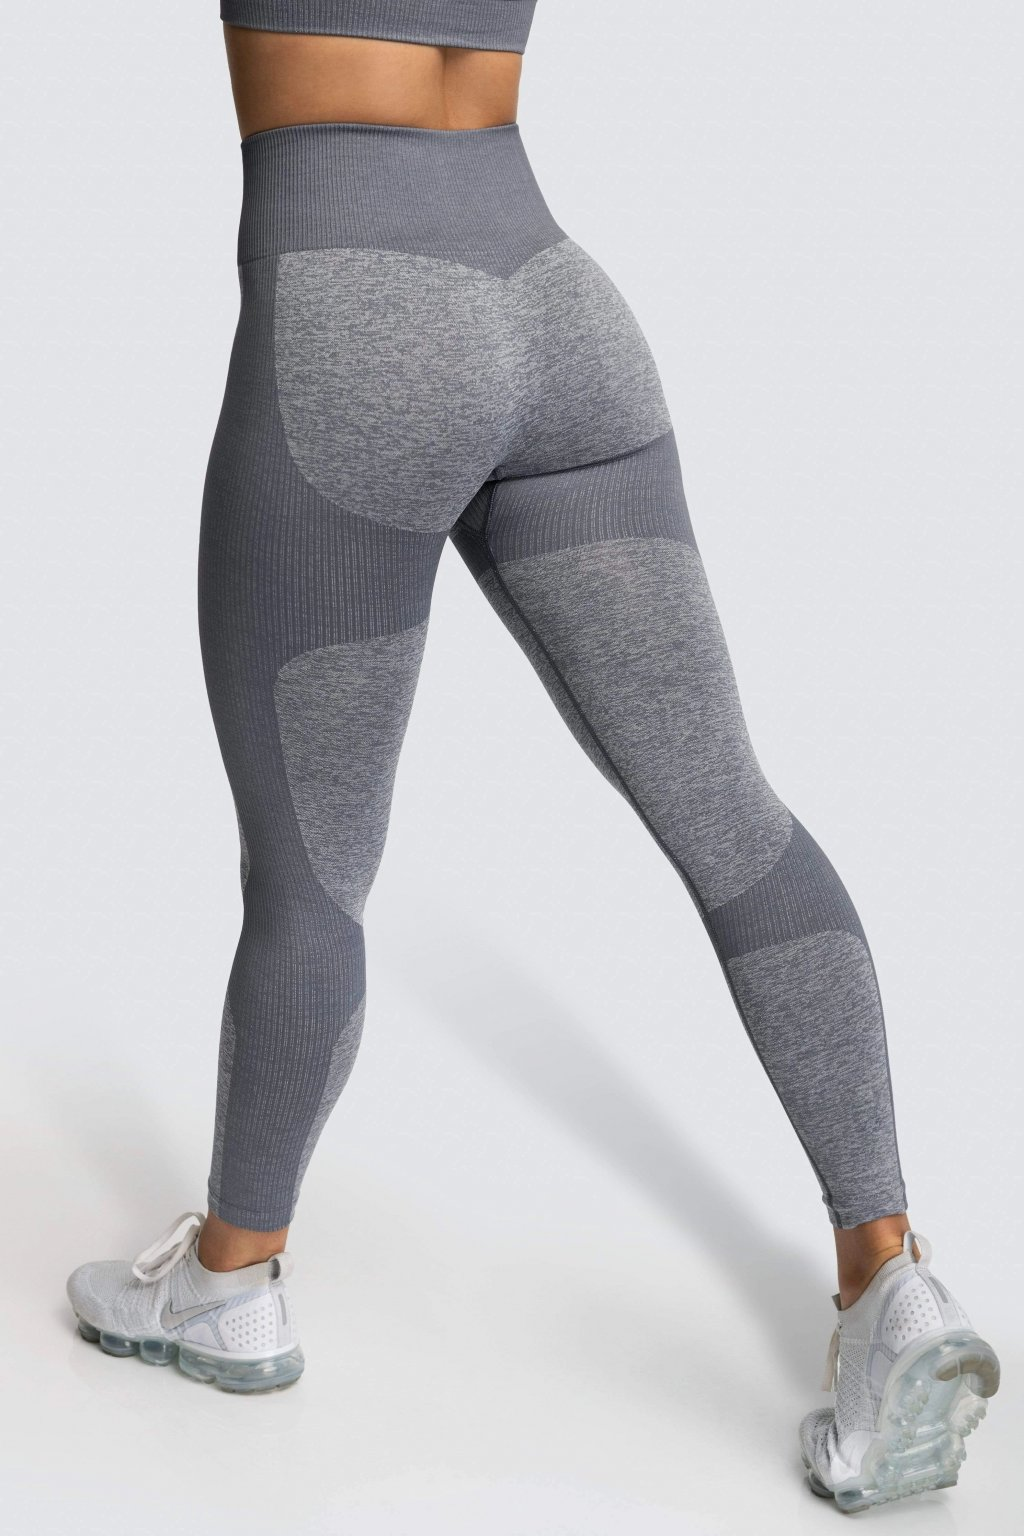 impact seamless leggings cool grey 4271592472660 2048x@2x